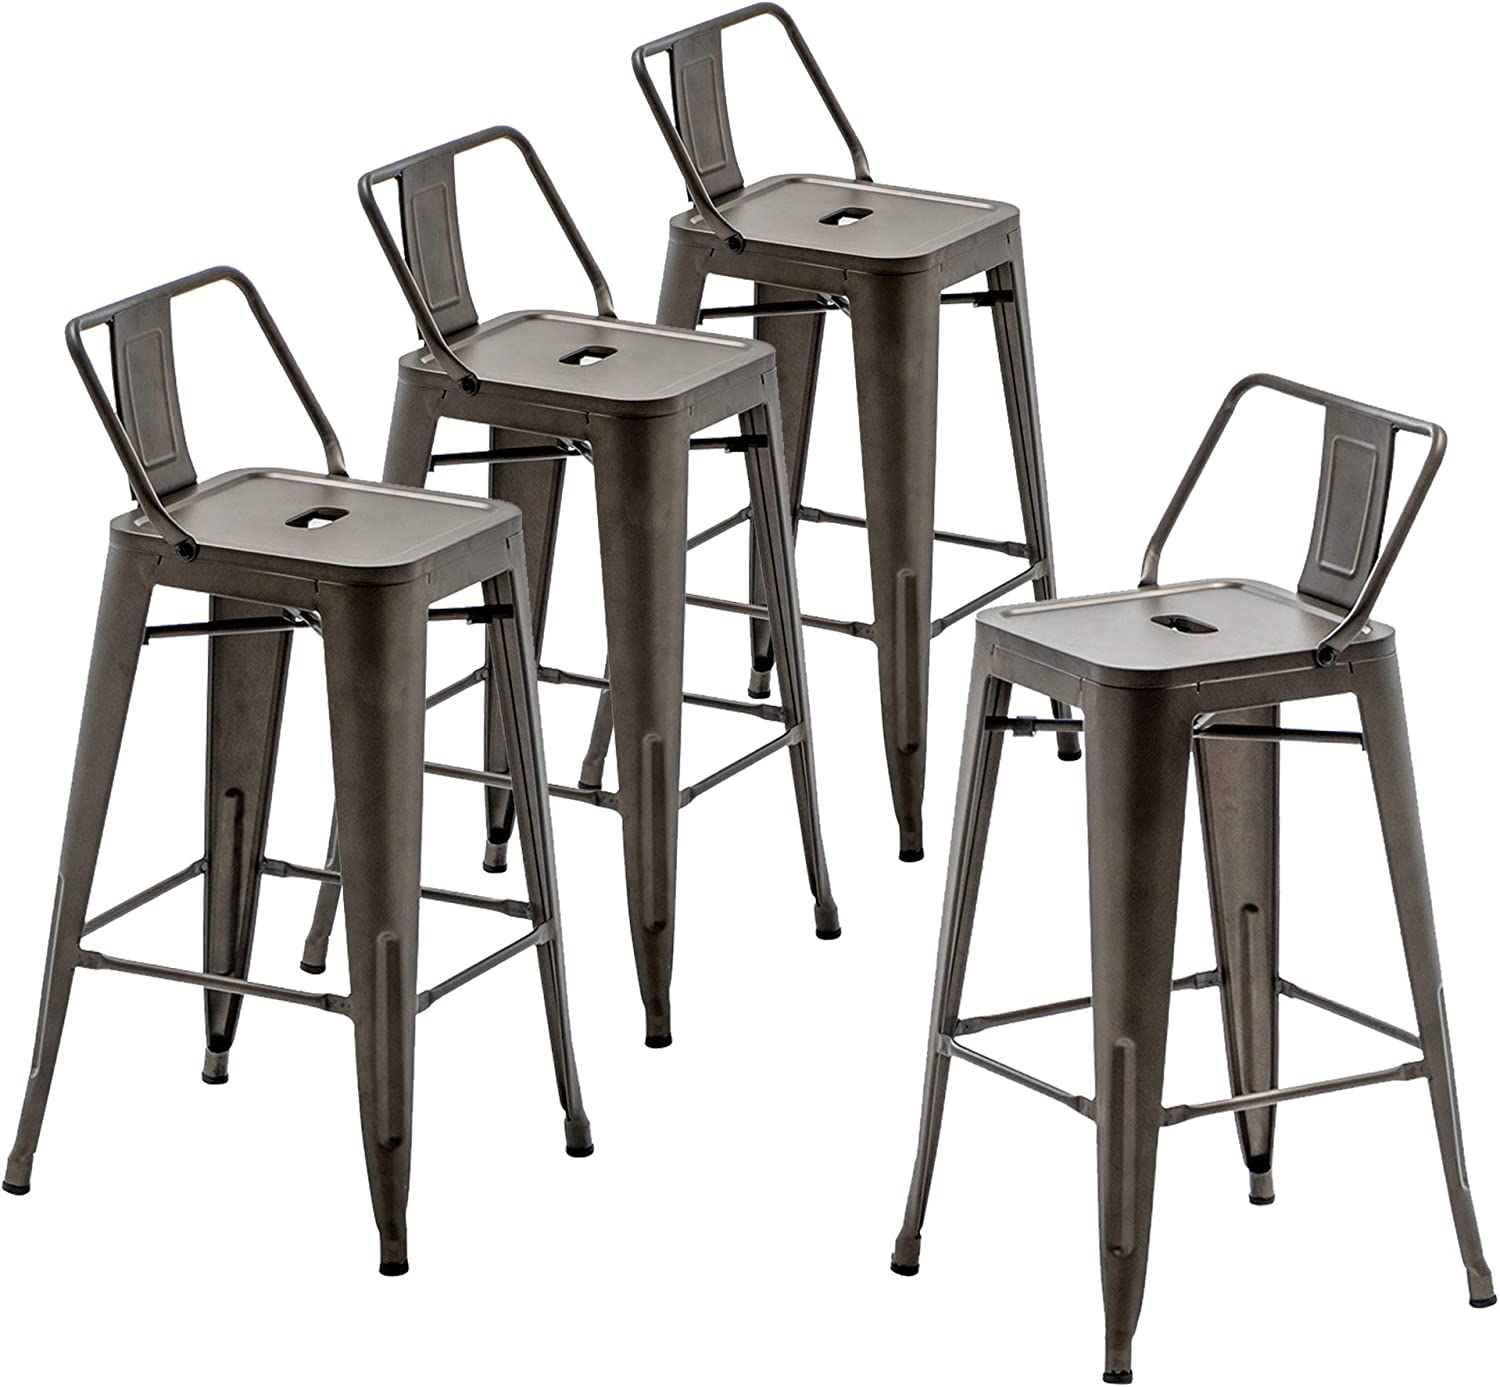 9 inch Metal Barstools Set of 9 Indoor Outdoor Bar Stools with Back  Kitchen Dining Counter Stools Bar Chairs Rusty